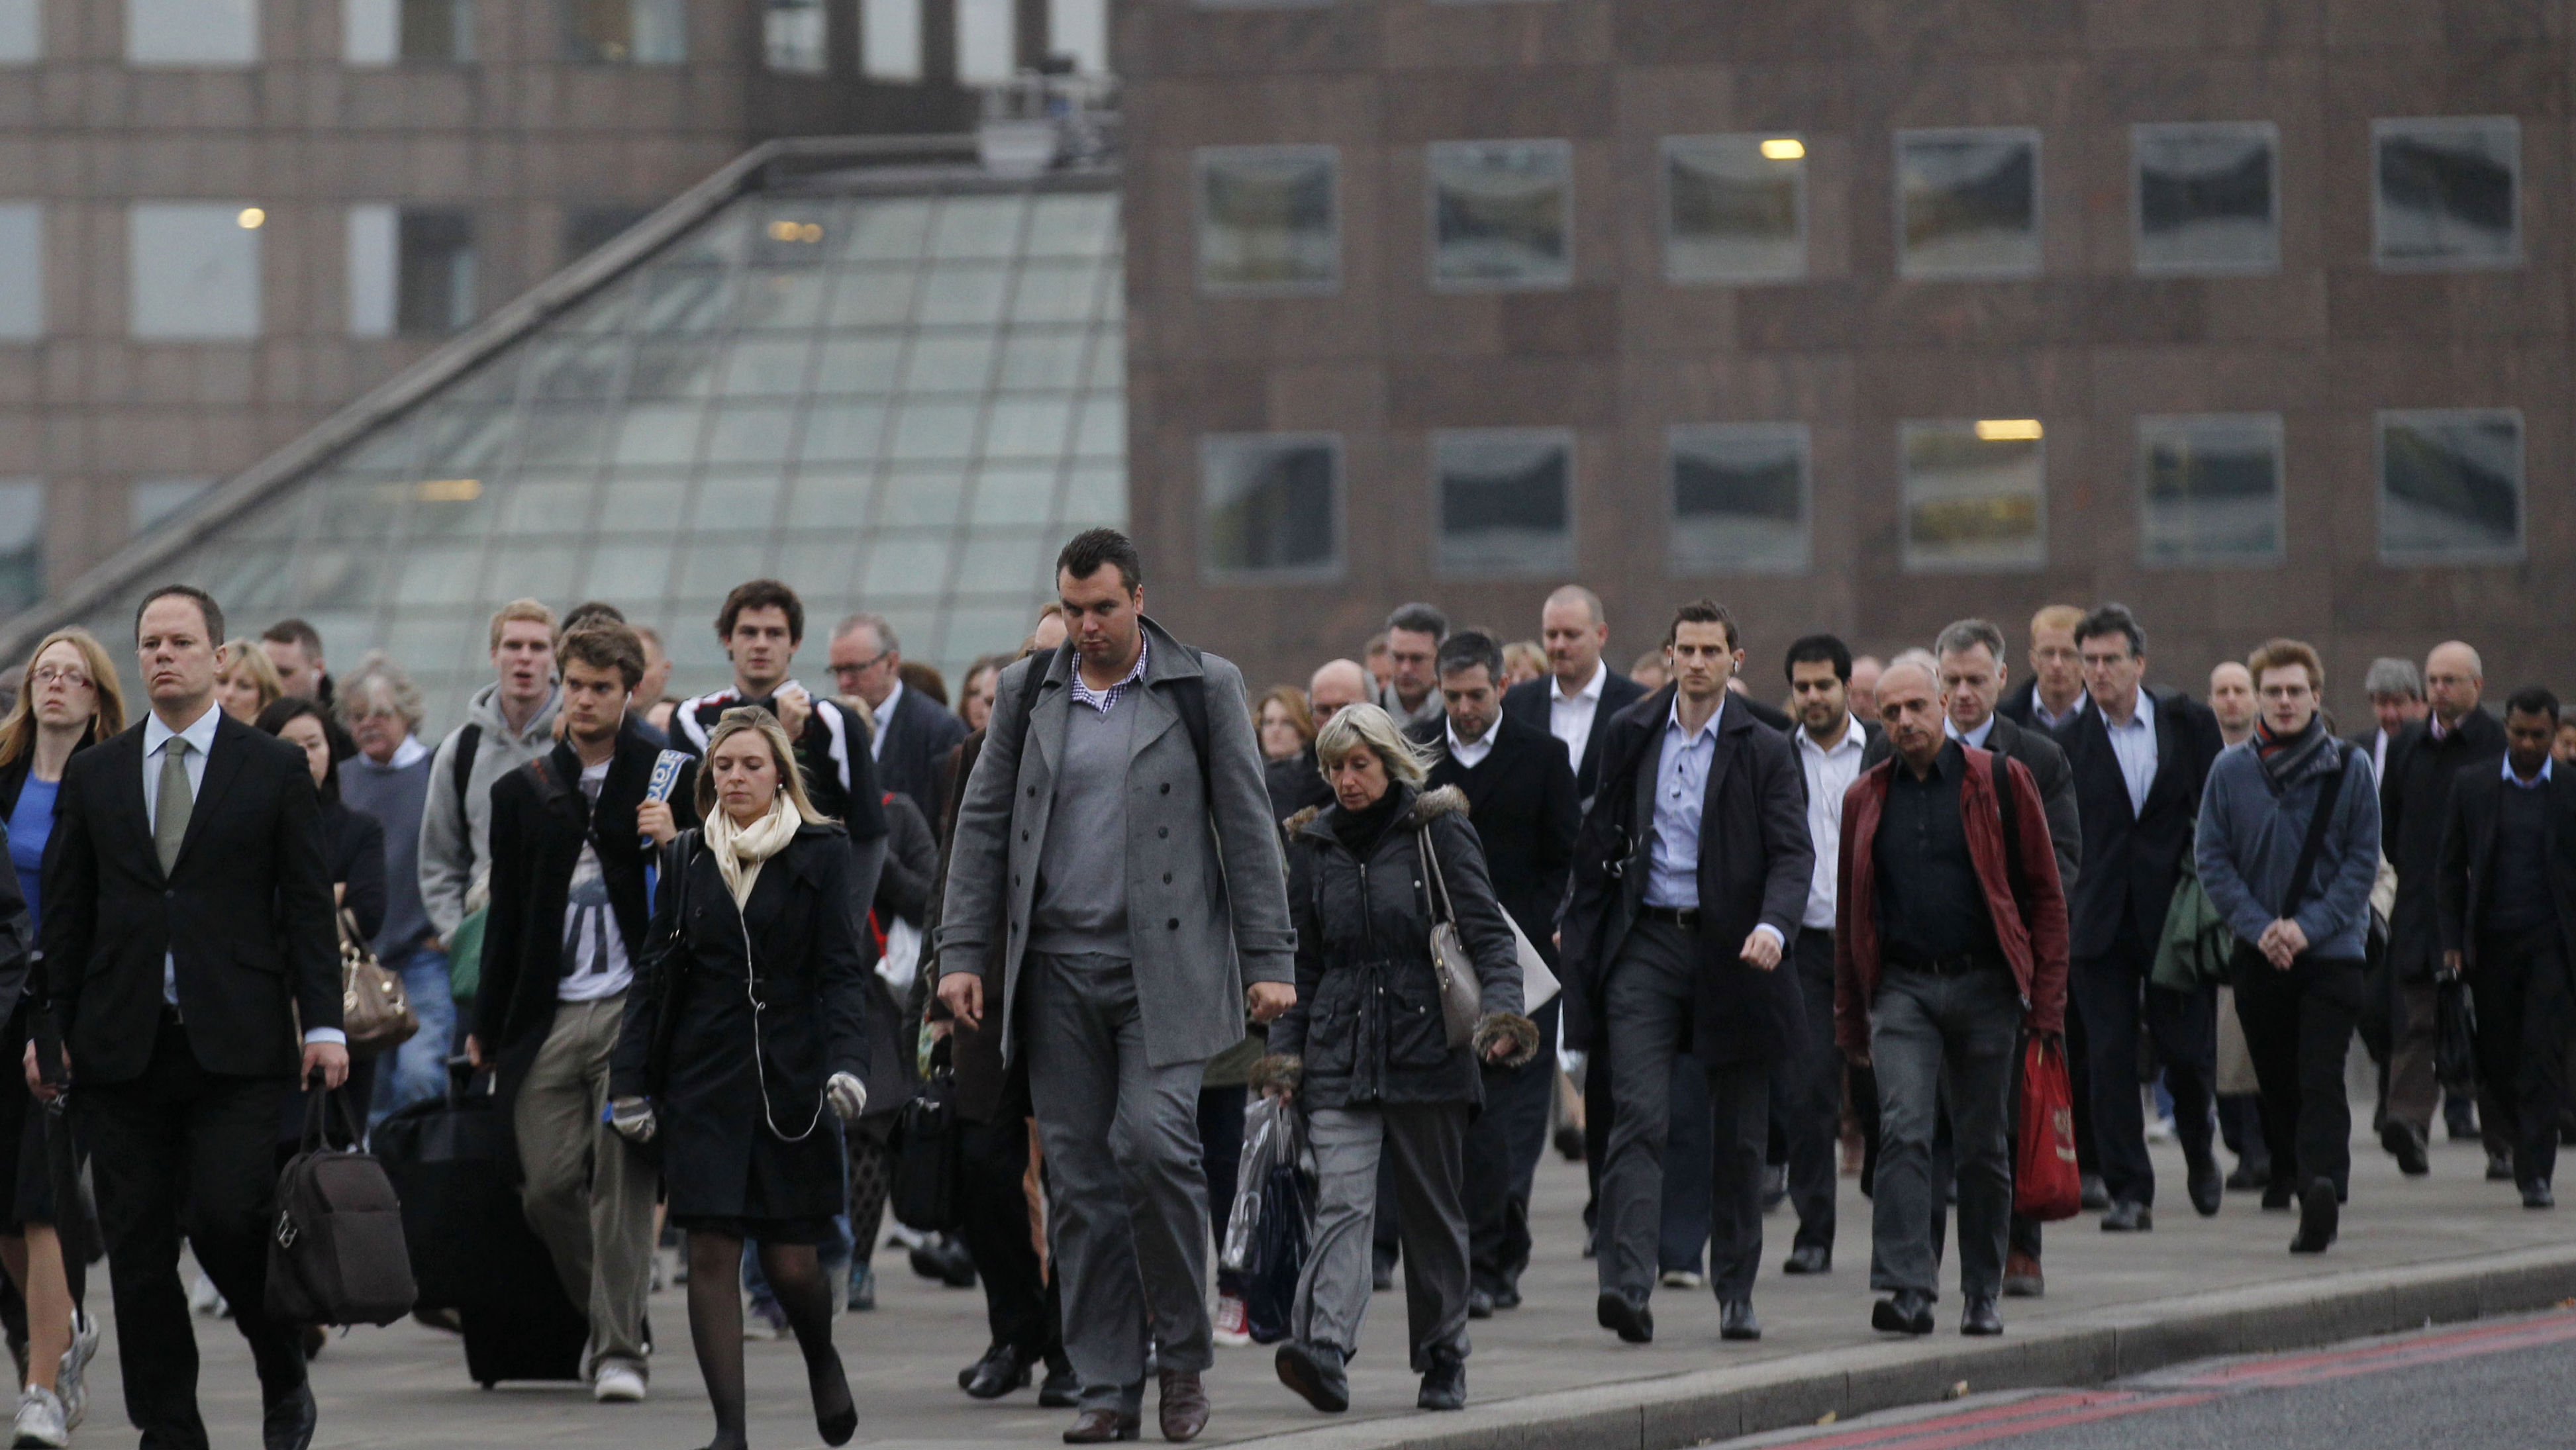 Employees walking to work in the UK